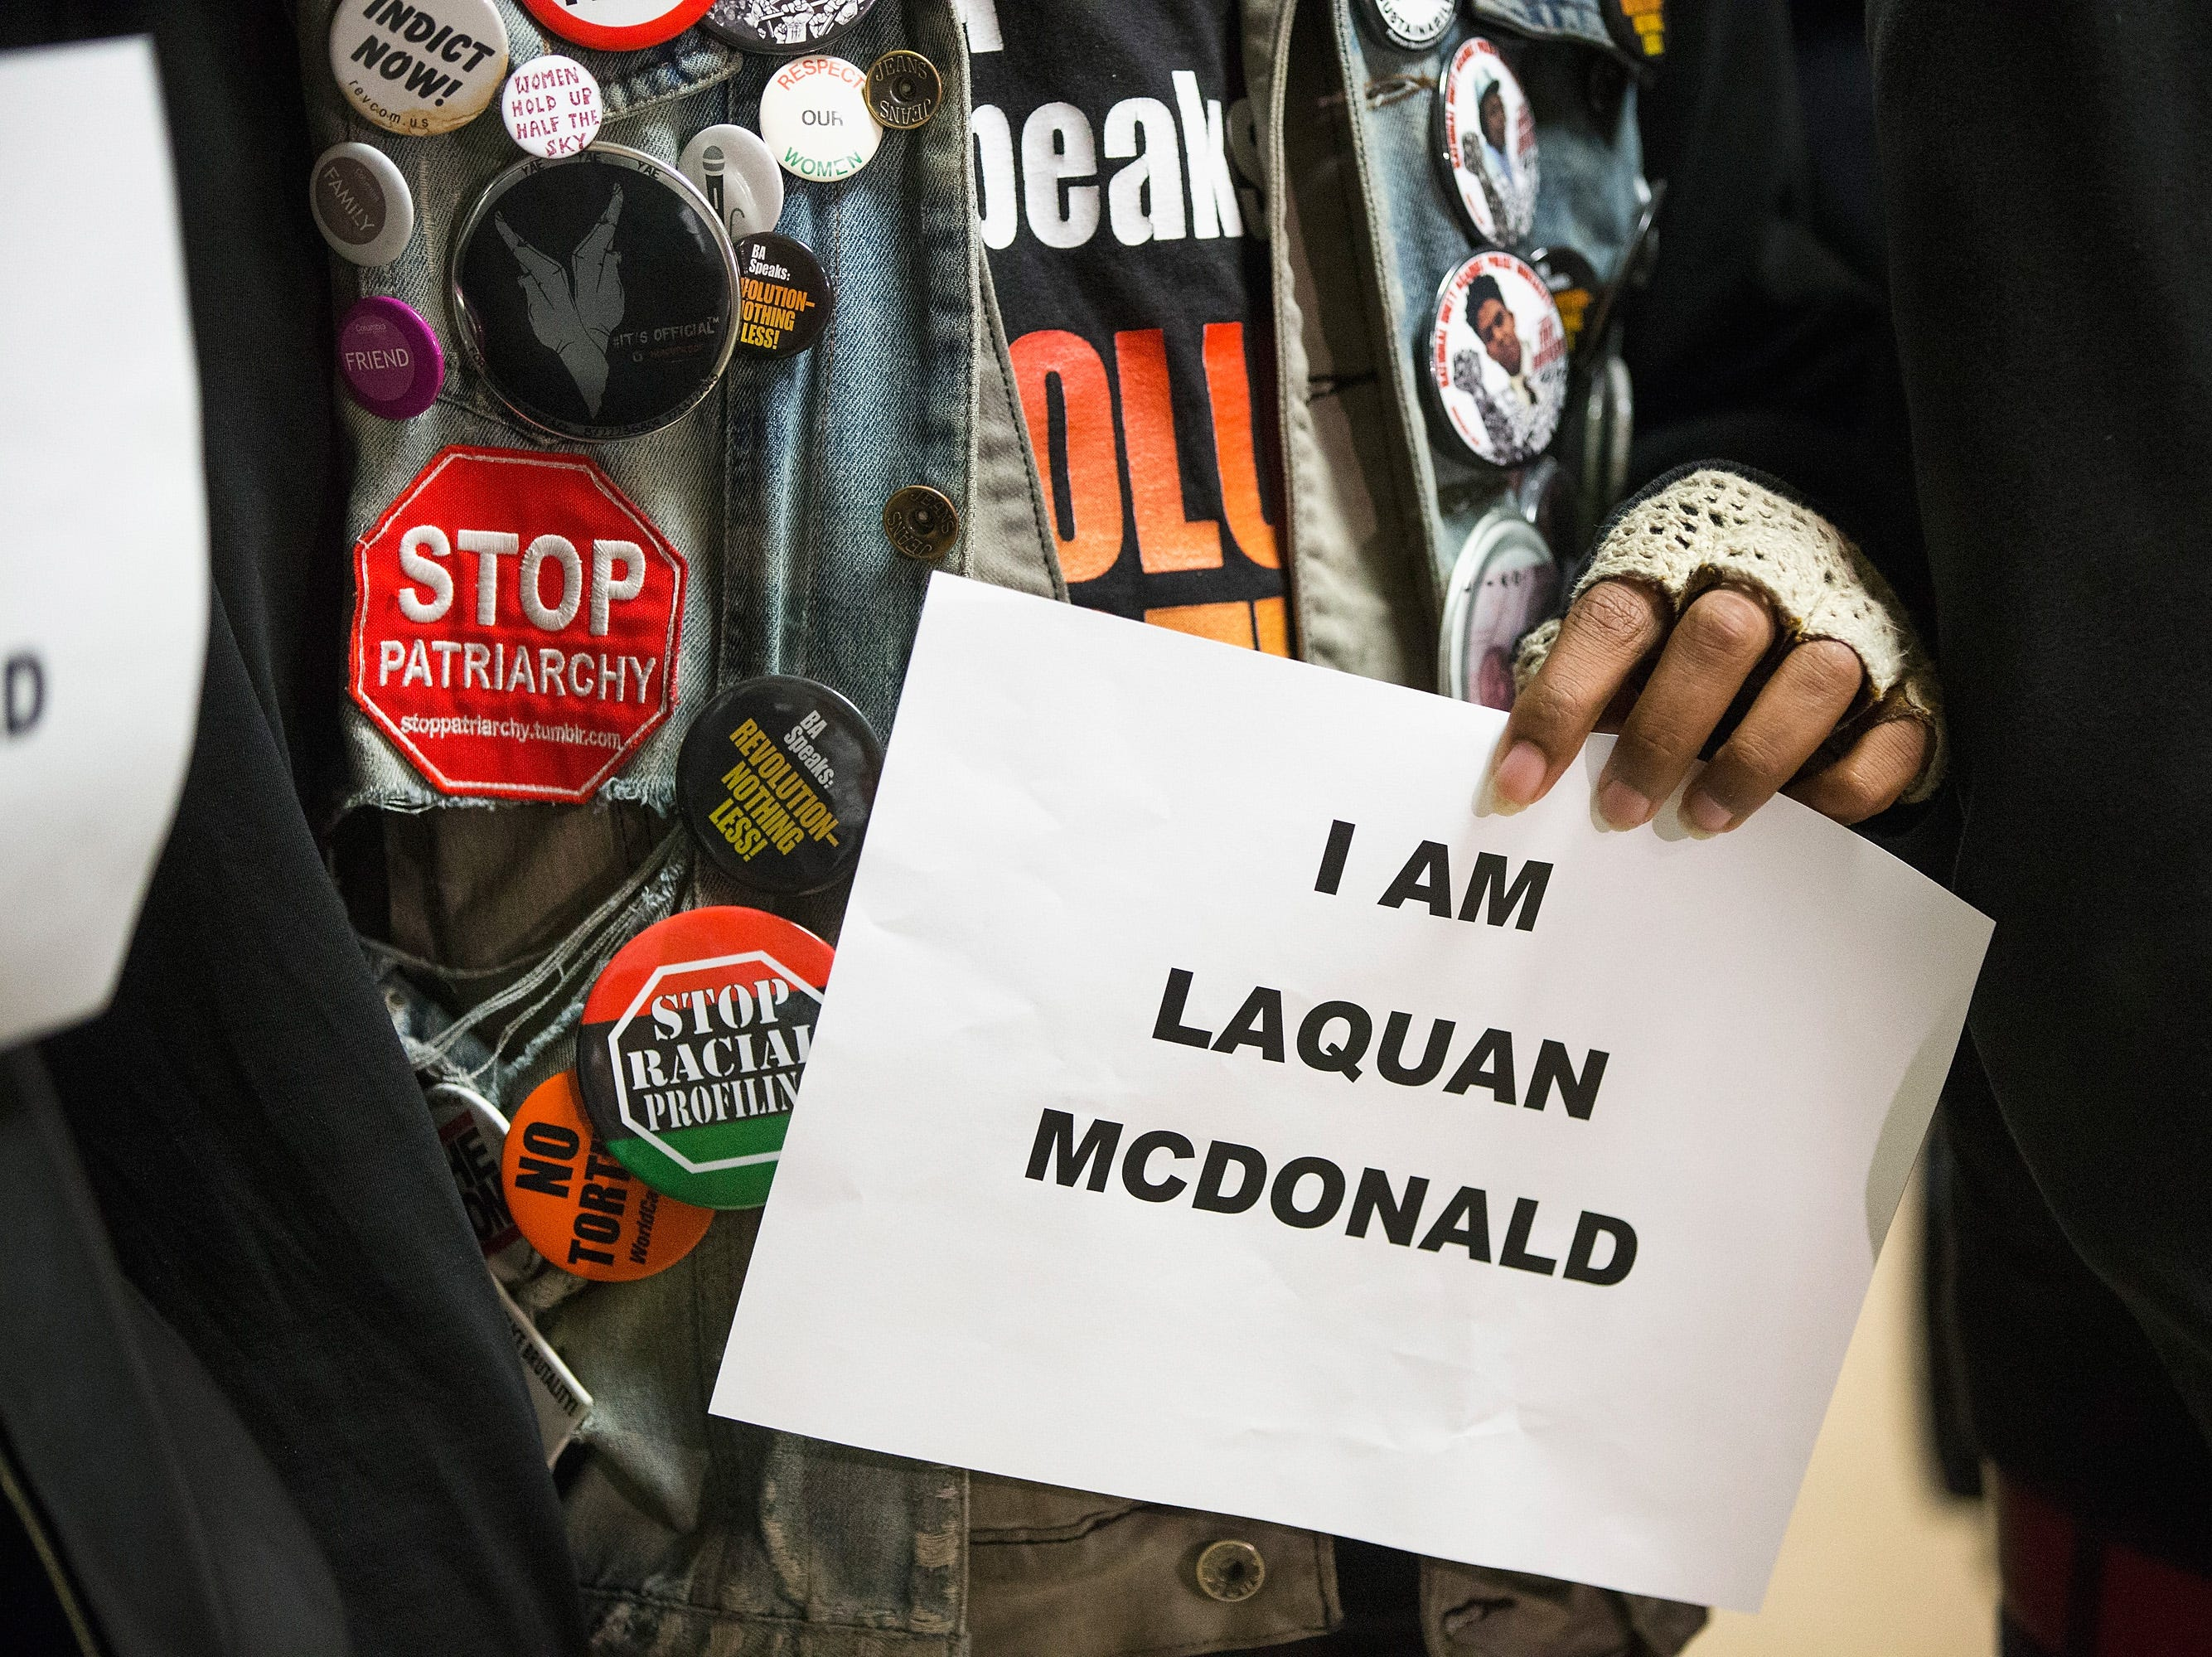 Demonstrators protest the shooting death of Laquan McDonald by a Chicago police officer outside the mayor's office in City Hall on Dec. 7, 2015 in Chicago, Illinois.